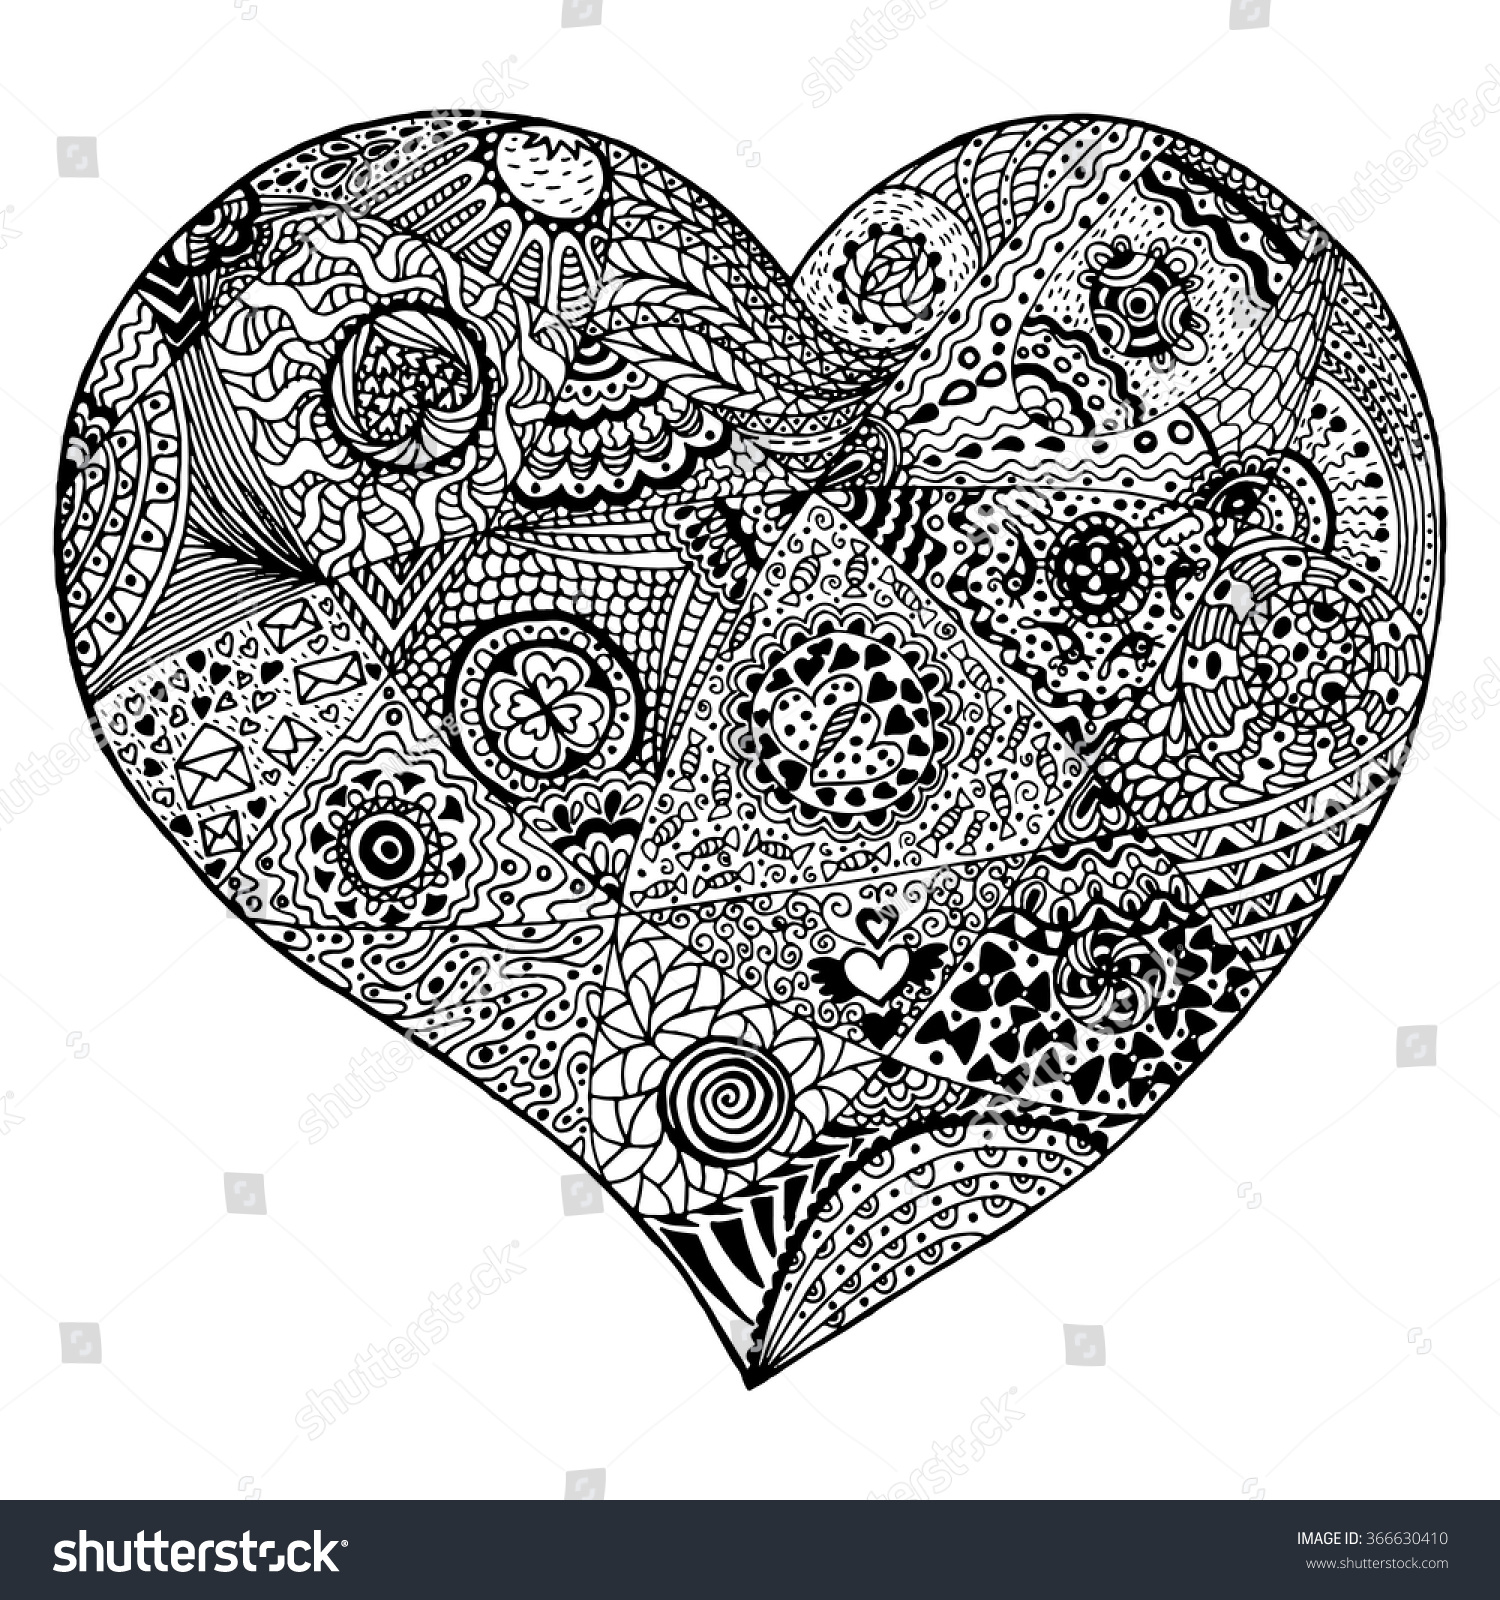 Anti stress coloring therapy - Zentangle Heart For Adult Anti Stress Coloring Page For Art Therapy Illustration In Doodle Style